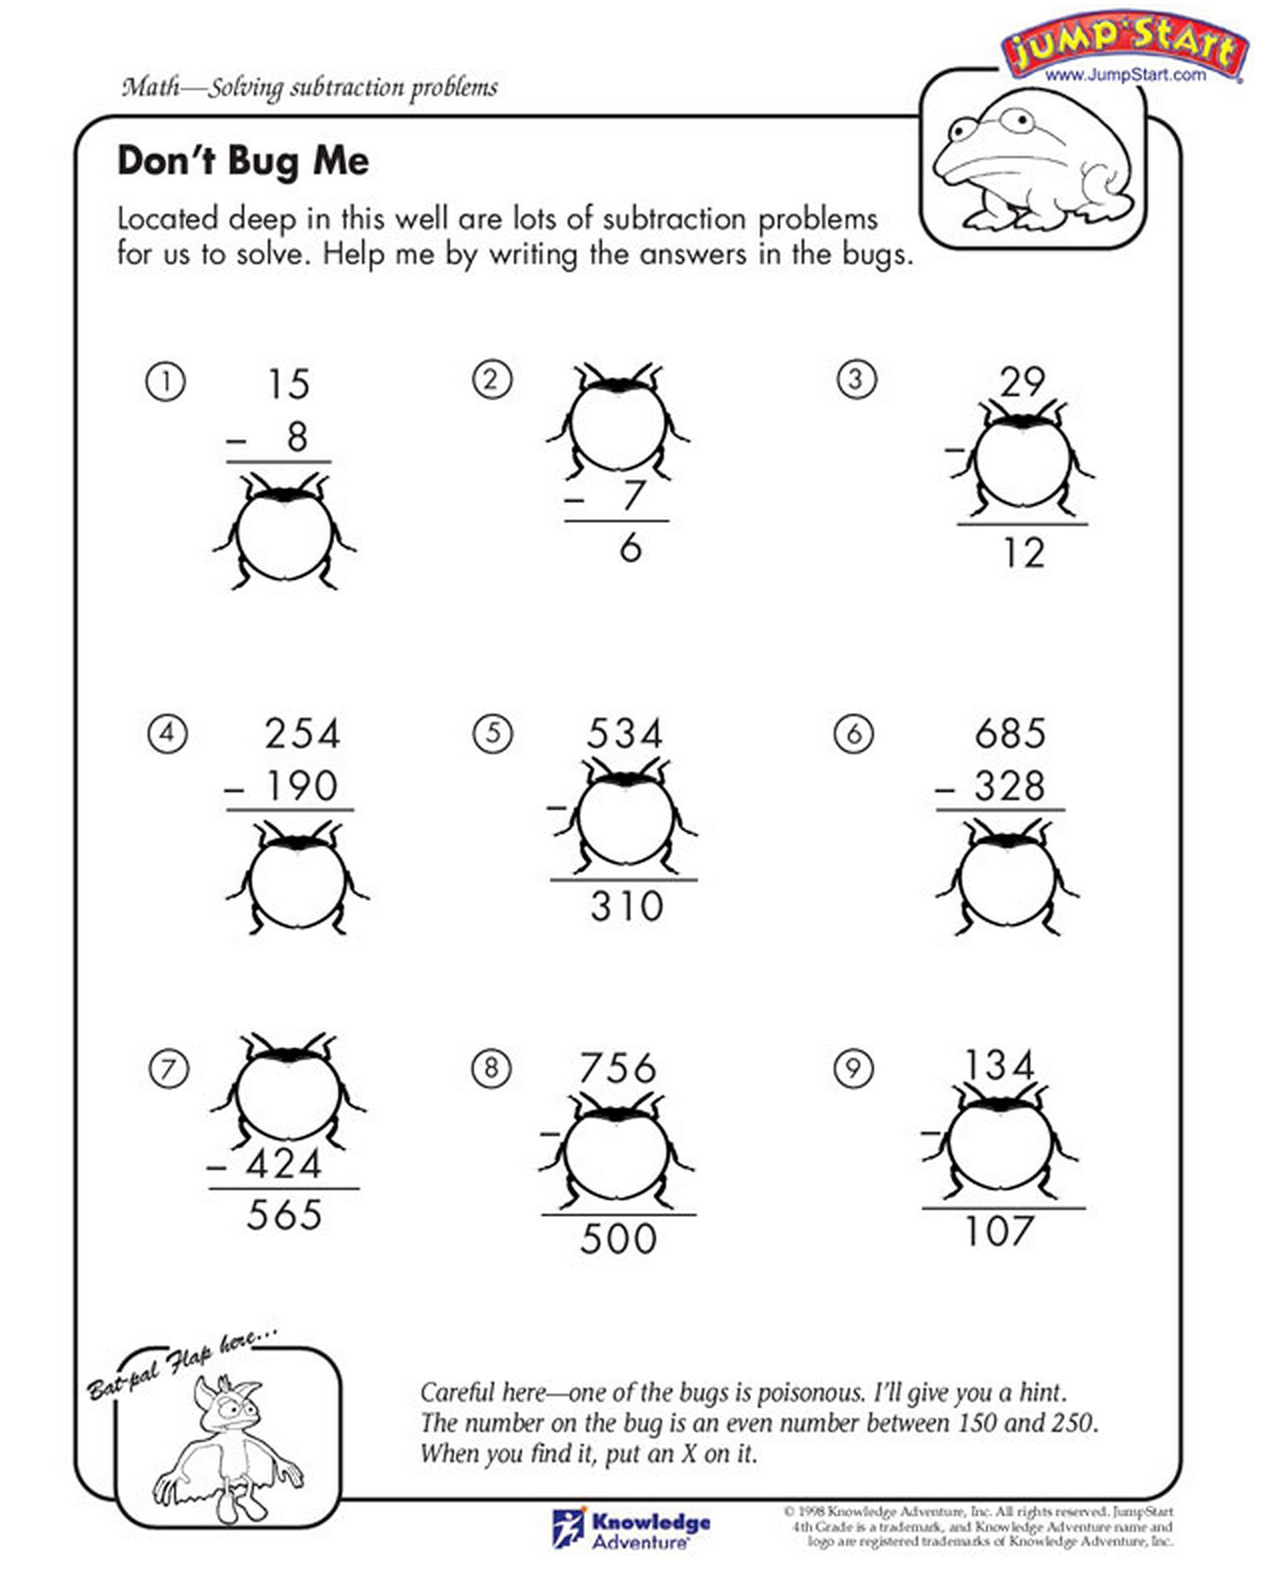 If You Solve This Math Sheet Real Quick These Creepy Bugs